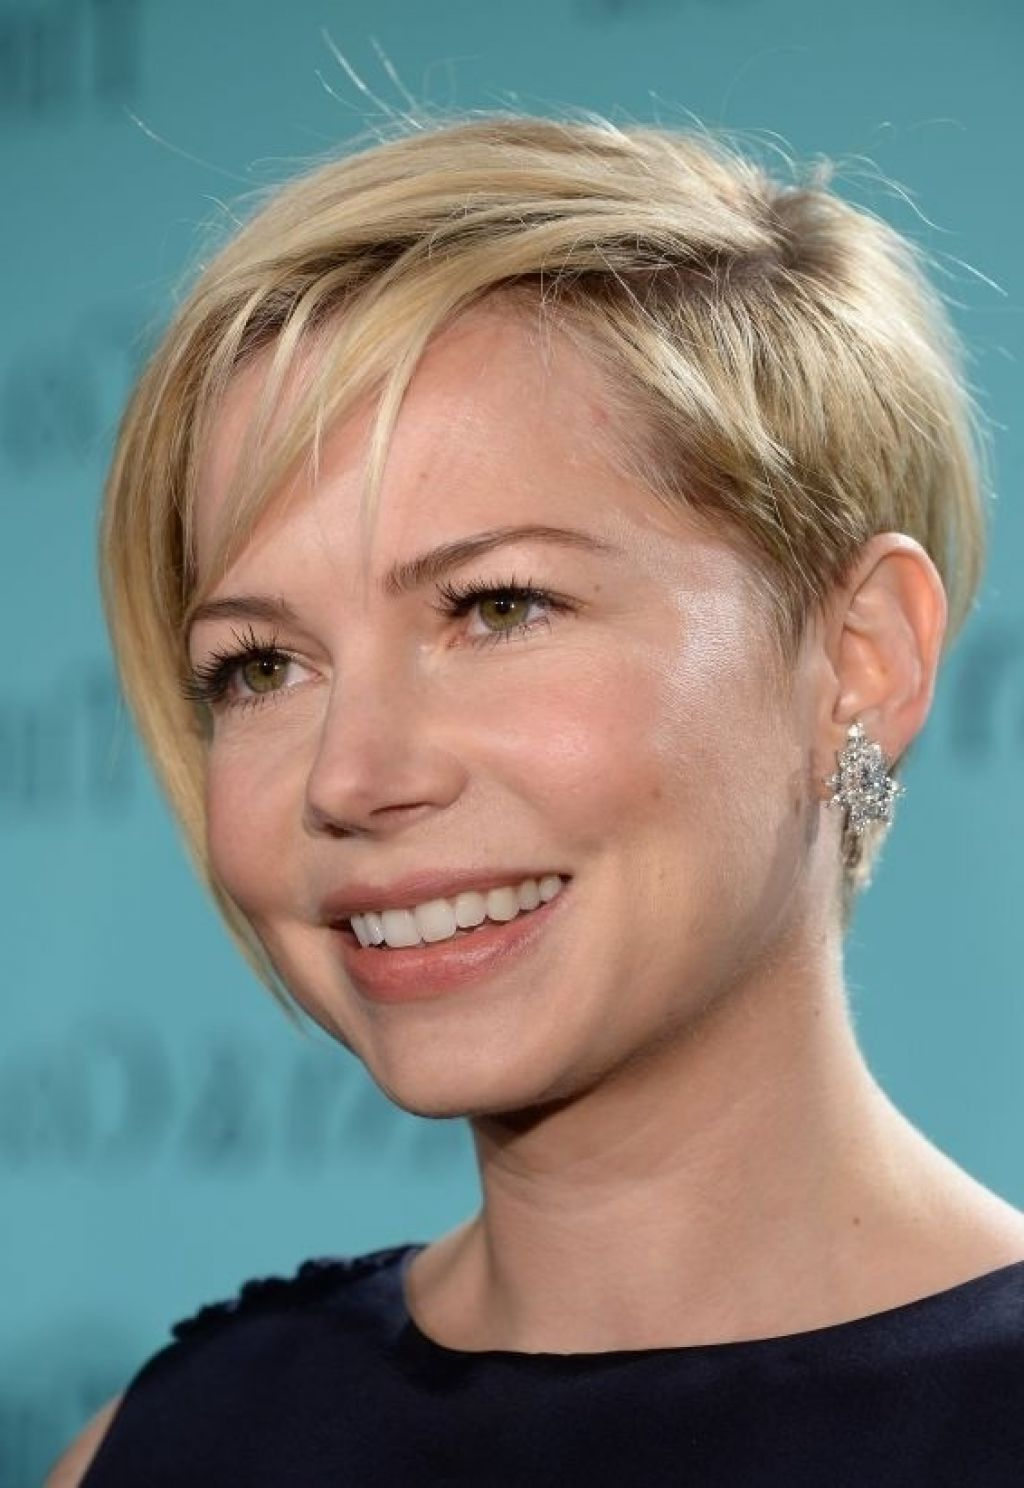 williams hair style hairstyles williams pixie sty e and 7922